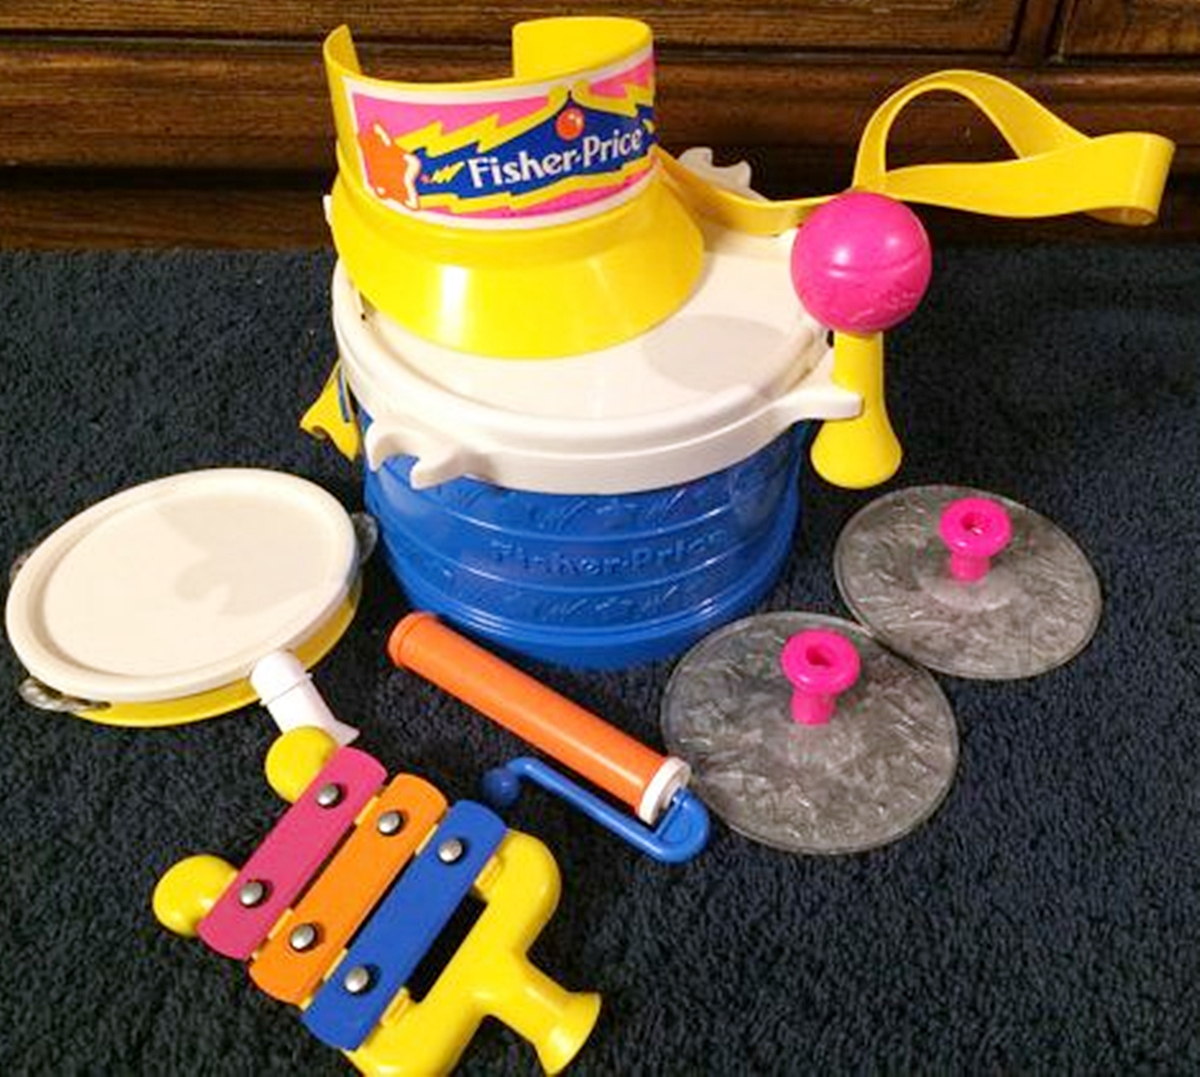 15 7 15 Musical Toys From Your Childhood We Bet You've Forgotten About